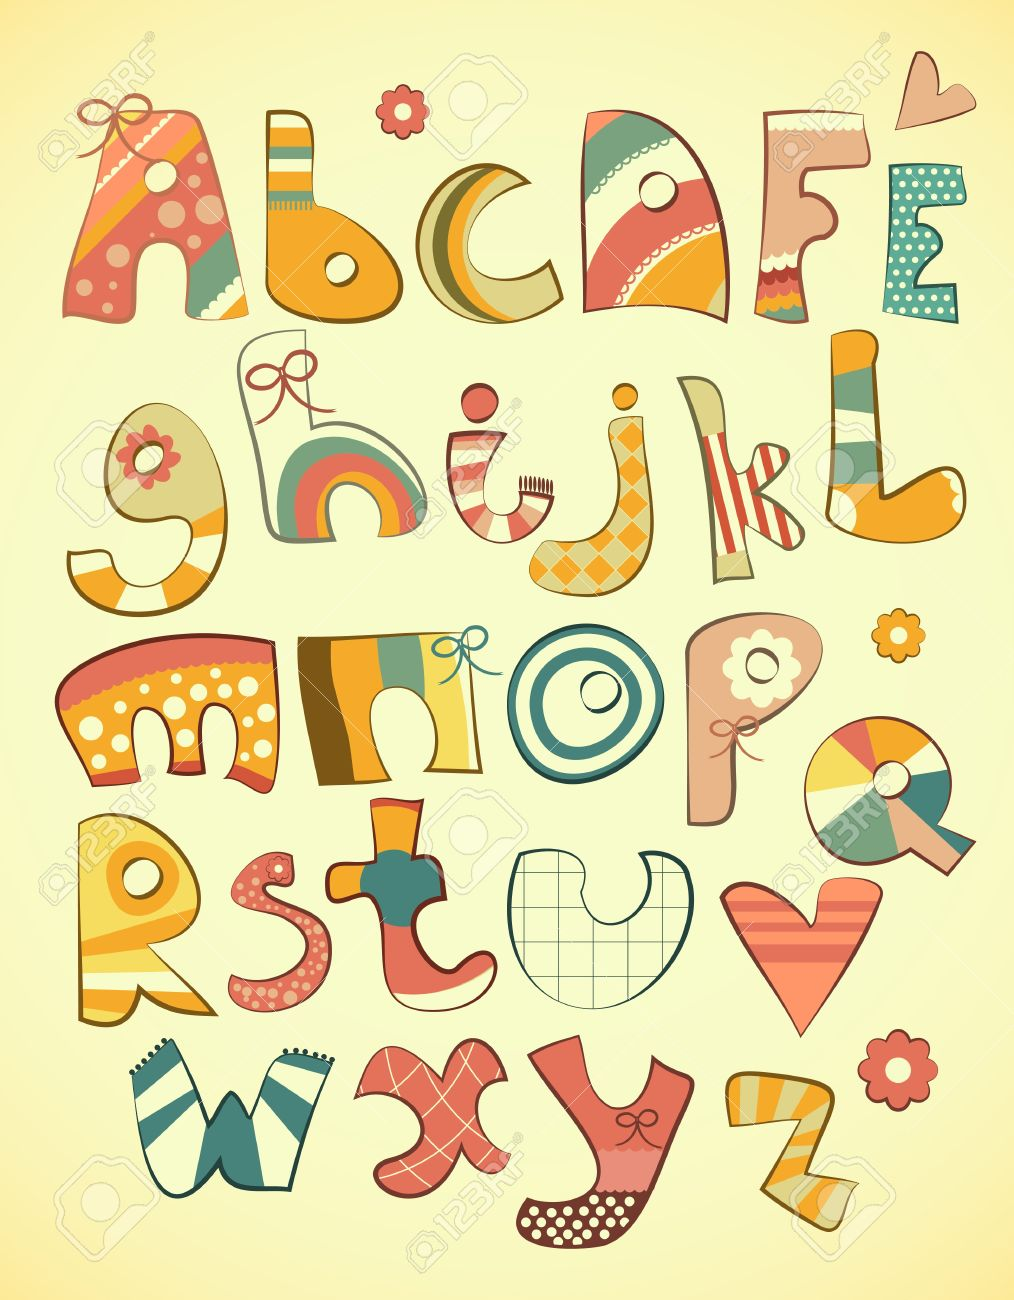 Alphabet Design In Fun Doodle Style Letters A Z Illustration Stock Vector